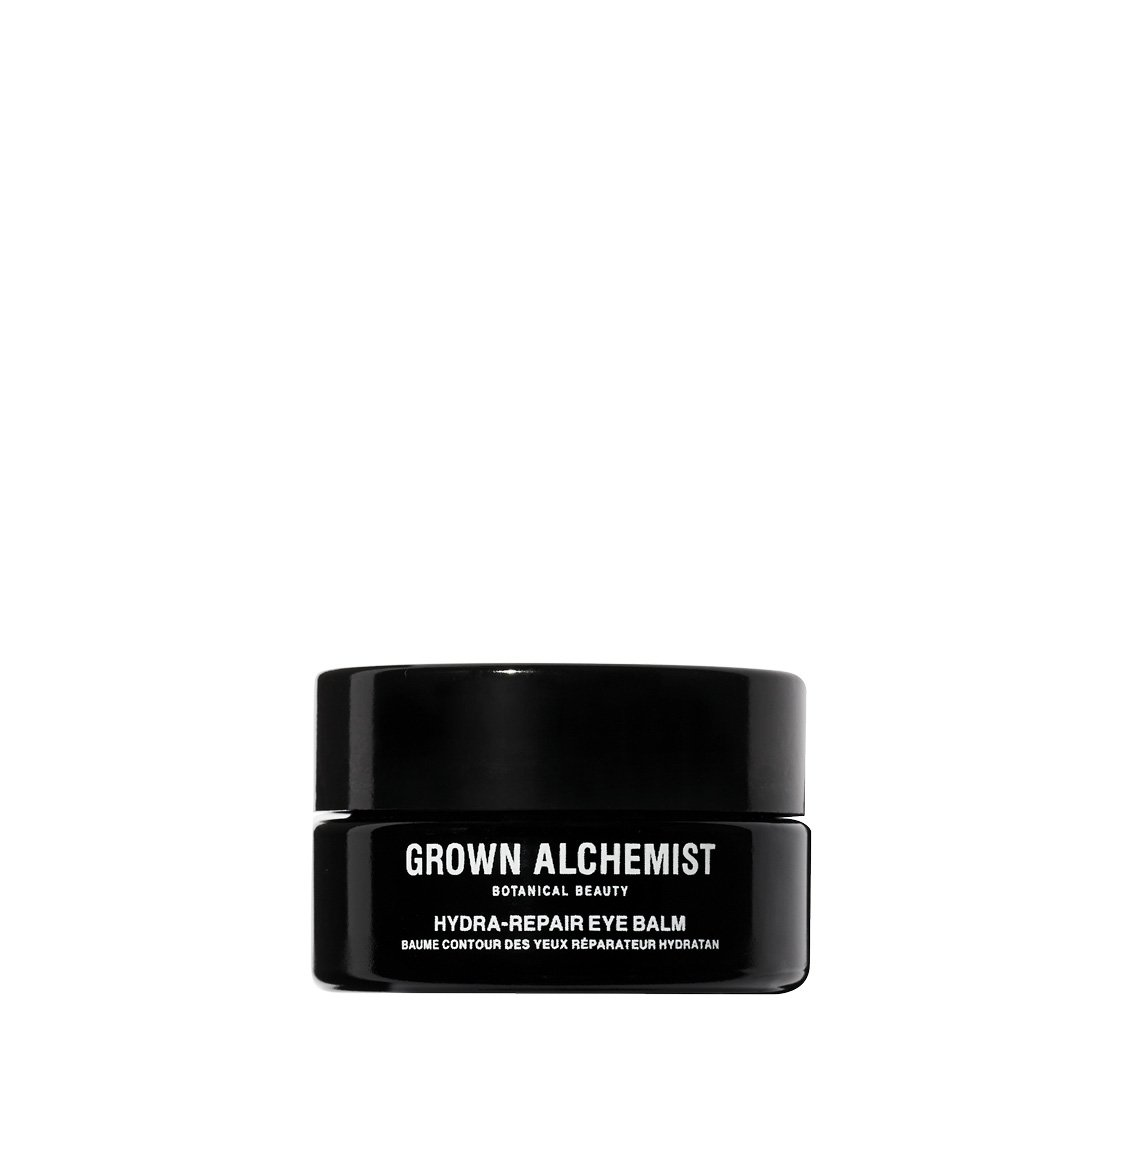 Grown_Alchemist_Hydra-Repair_Eye_Balm_Helianthus_Seed_Extract_Tocopherol_The_Project_Garments_A